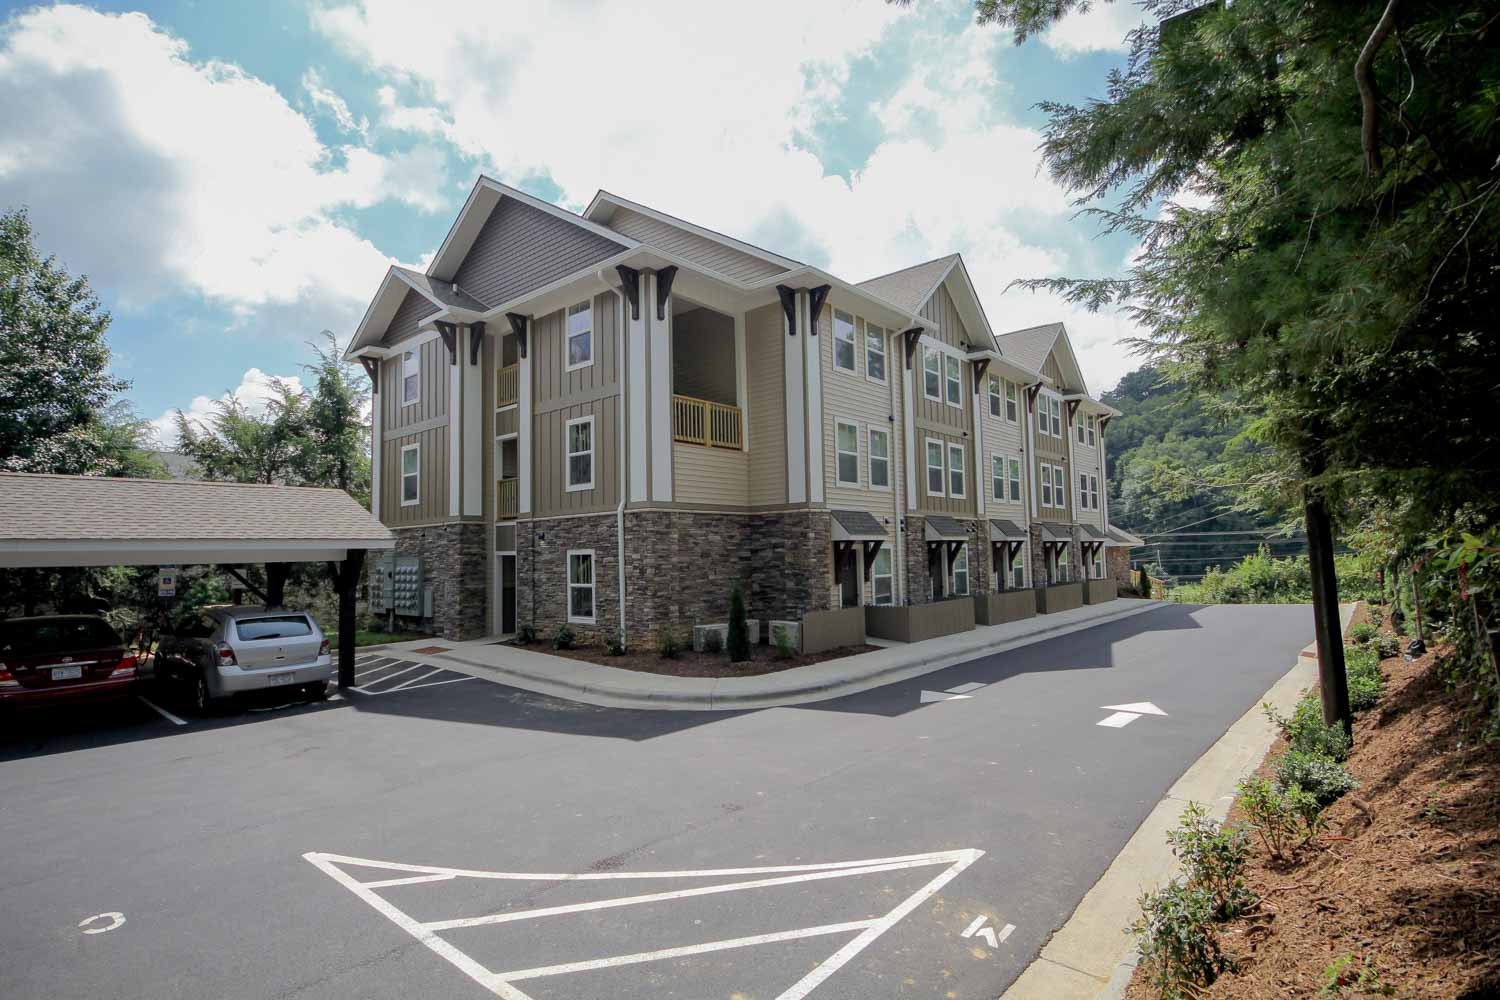 one bedroom apartments boone nc : clairelevy